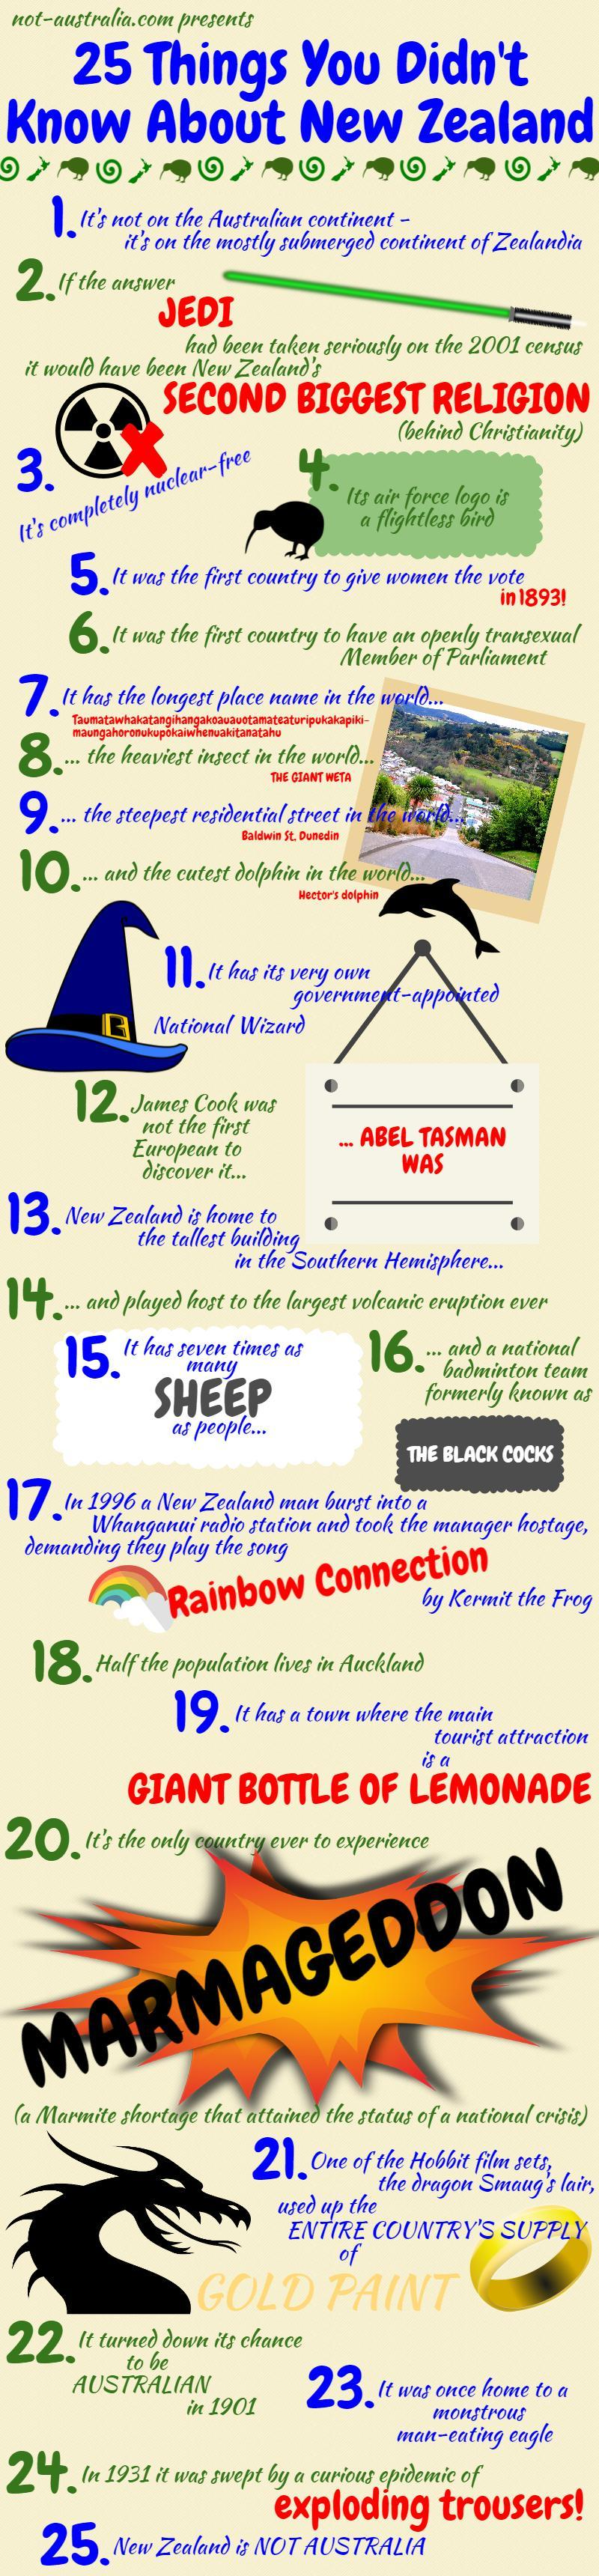 25 Things You Didn't Know About New Zealand